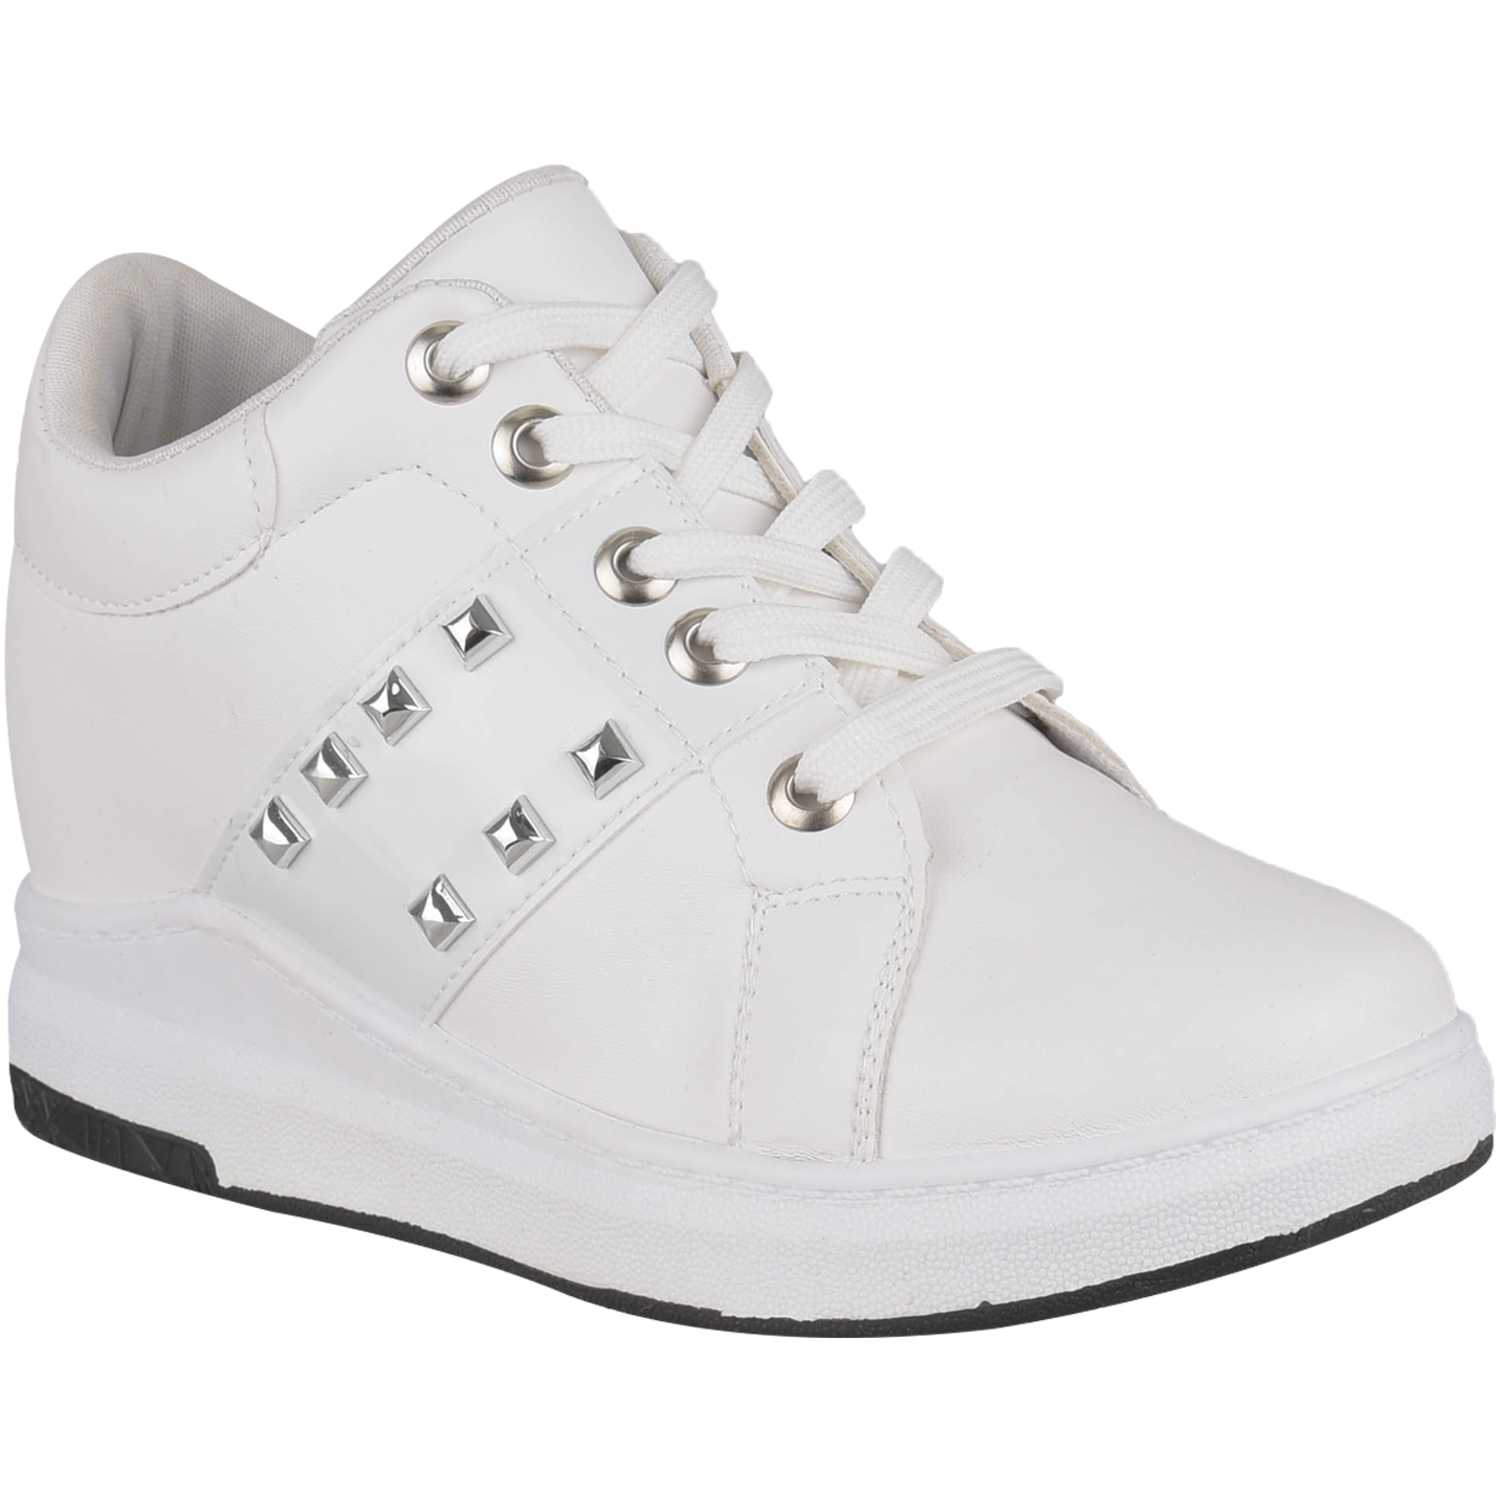 Platanitos zw cool4 Blanco Zapatillas Fashion